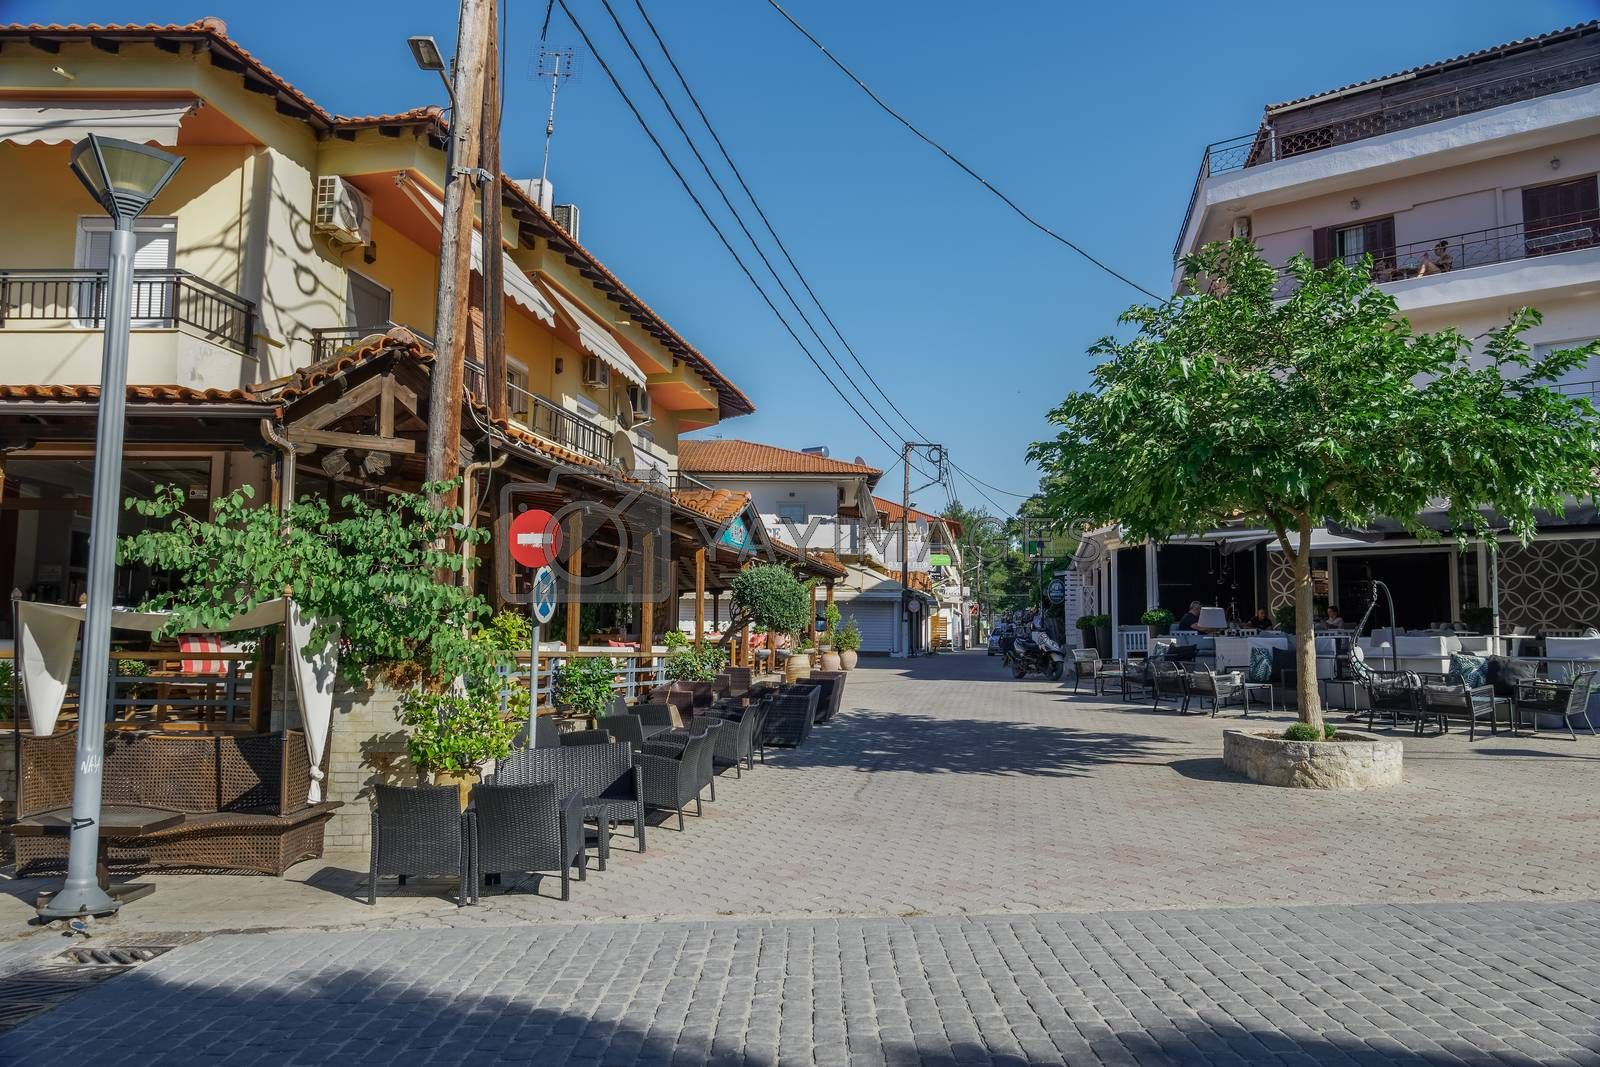 Day outdoor seating area with a few customers at Hanioti village square, Kassandra peninsula.